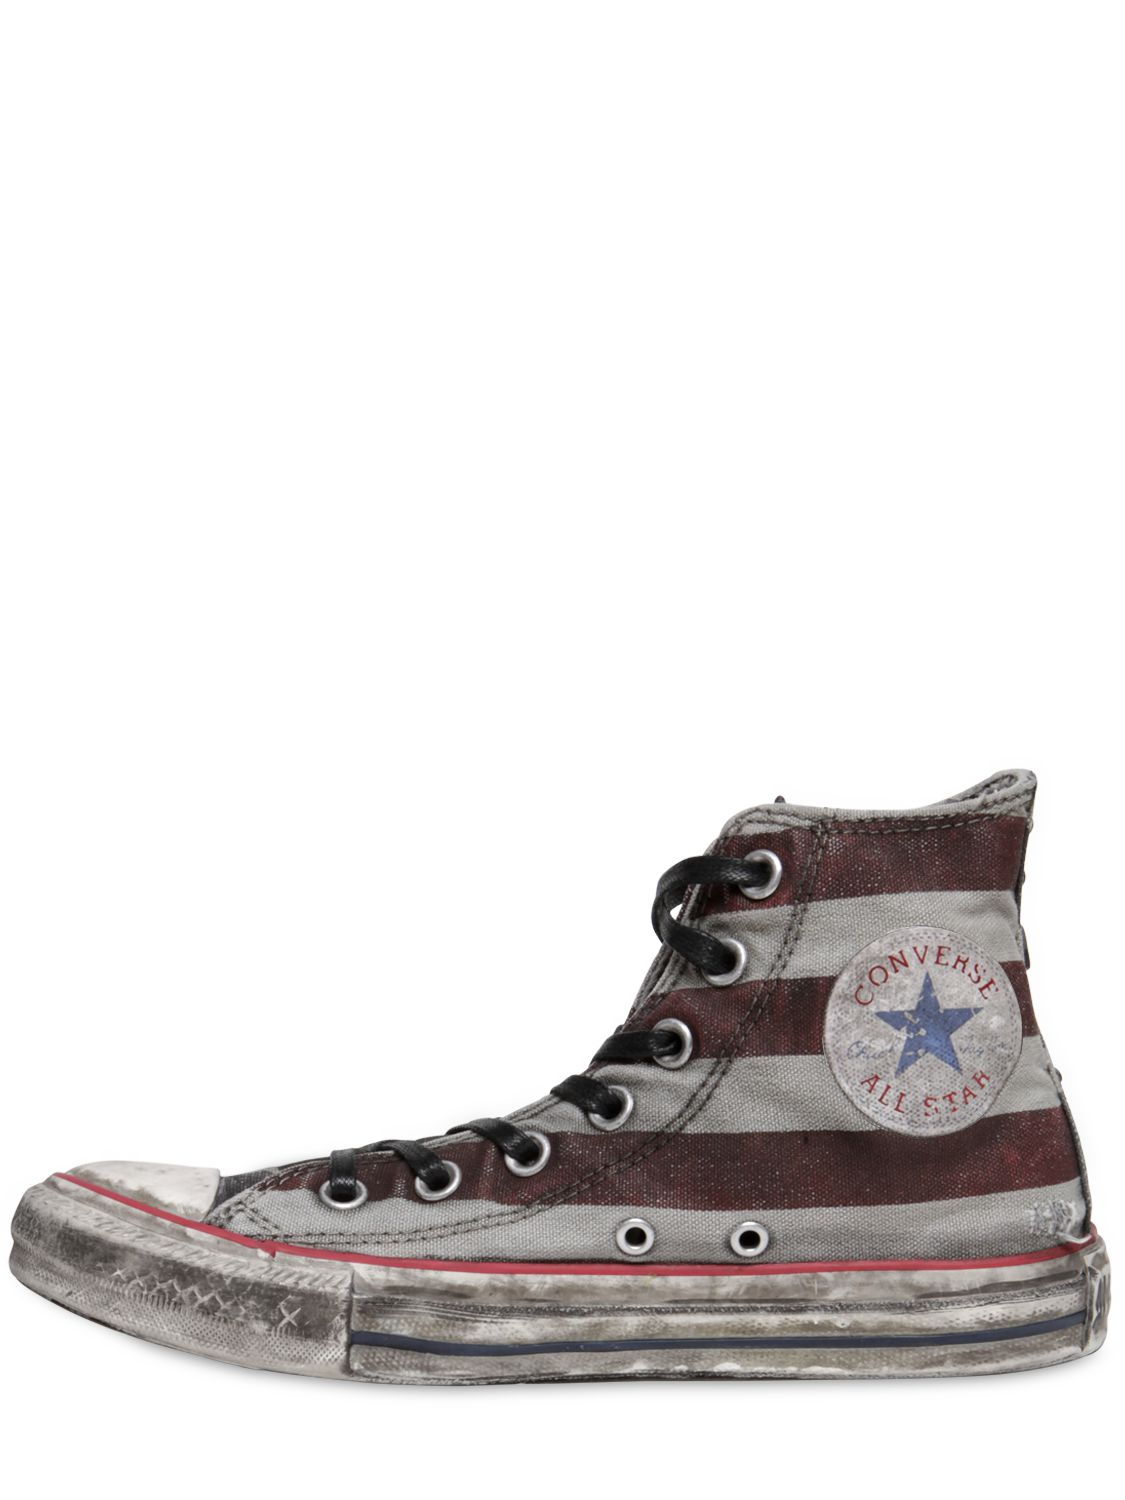 competitive price 1b072 ba39d Converse Stars   Bars Canvas High Top Sneakers in White for Men - Lyst